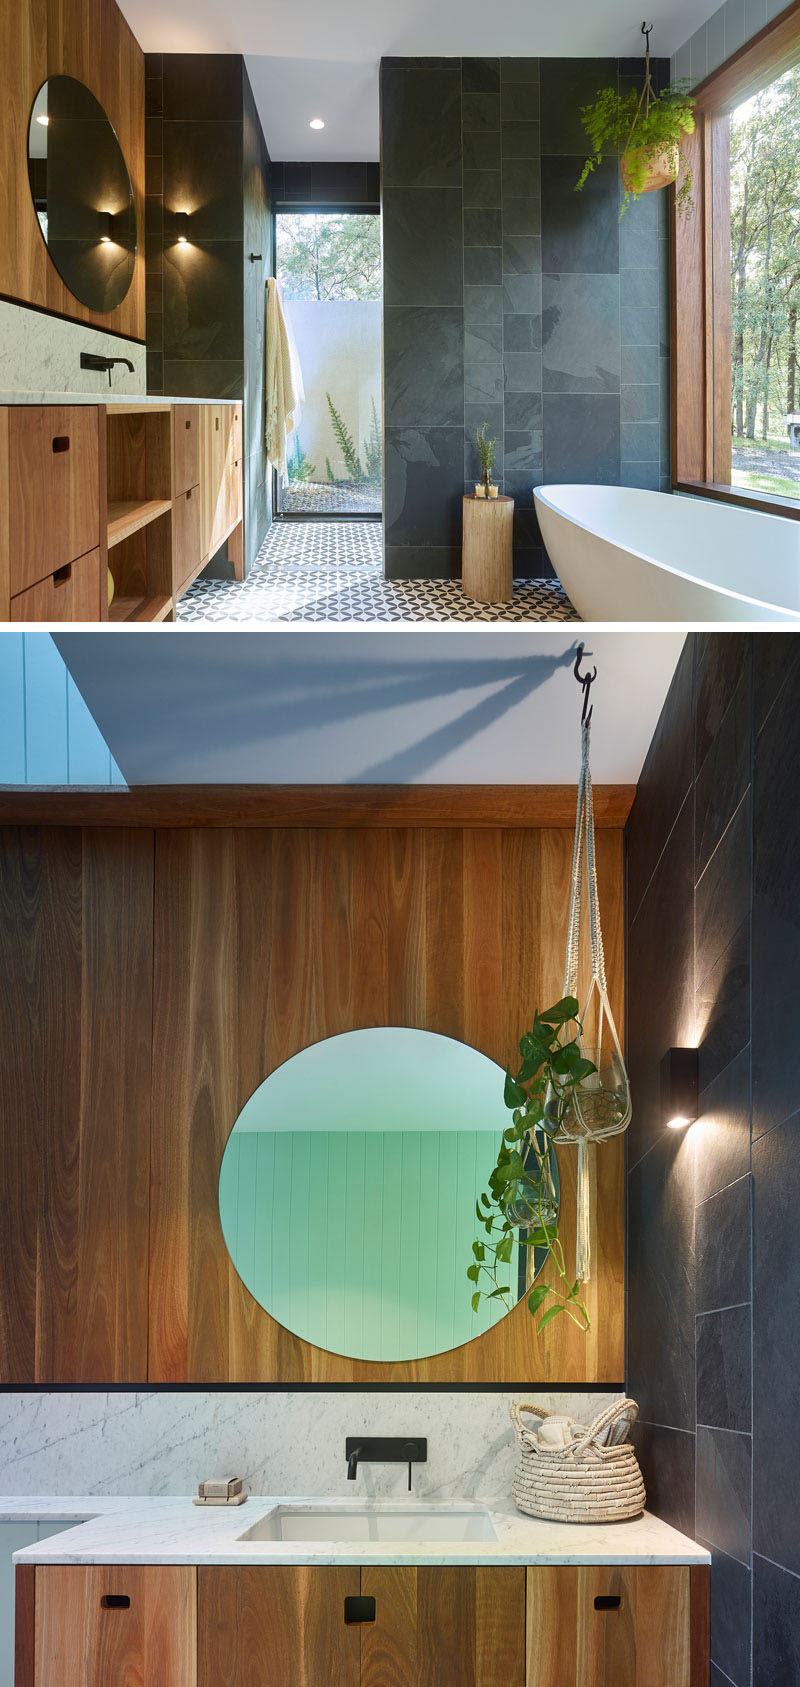 In this modern bathroom, a partially frosted glass panel provides privacy in the shower without blocking the light, while a large window beside the bathtub gives views of the trees. #BathroomDesign #ModernBathroom